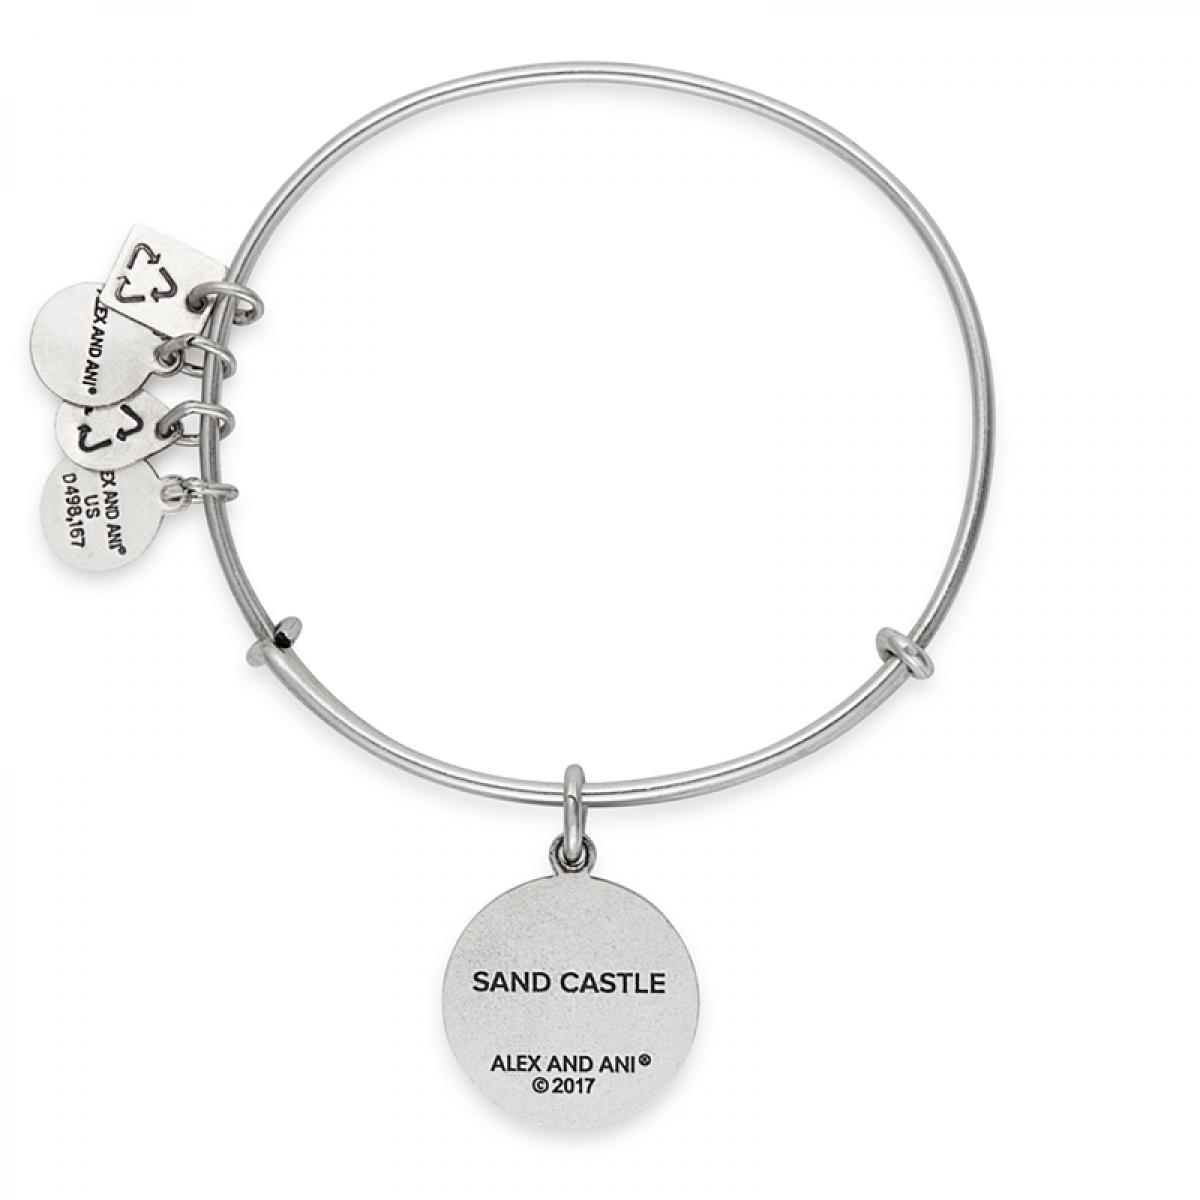 Alex And Ani Metallic Sand Castle Charm Bangle Sos Children S Villages Lyst View Fullscreen